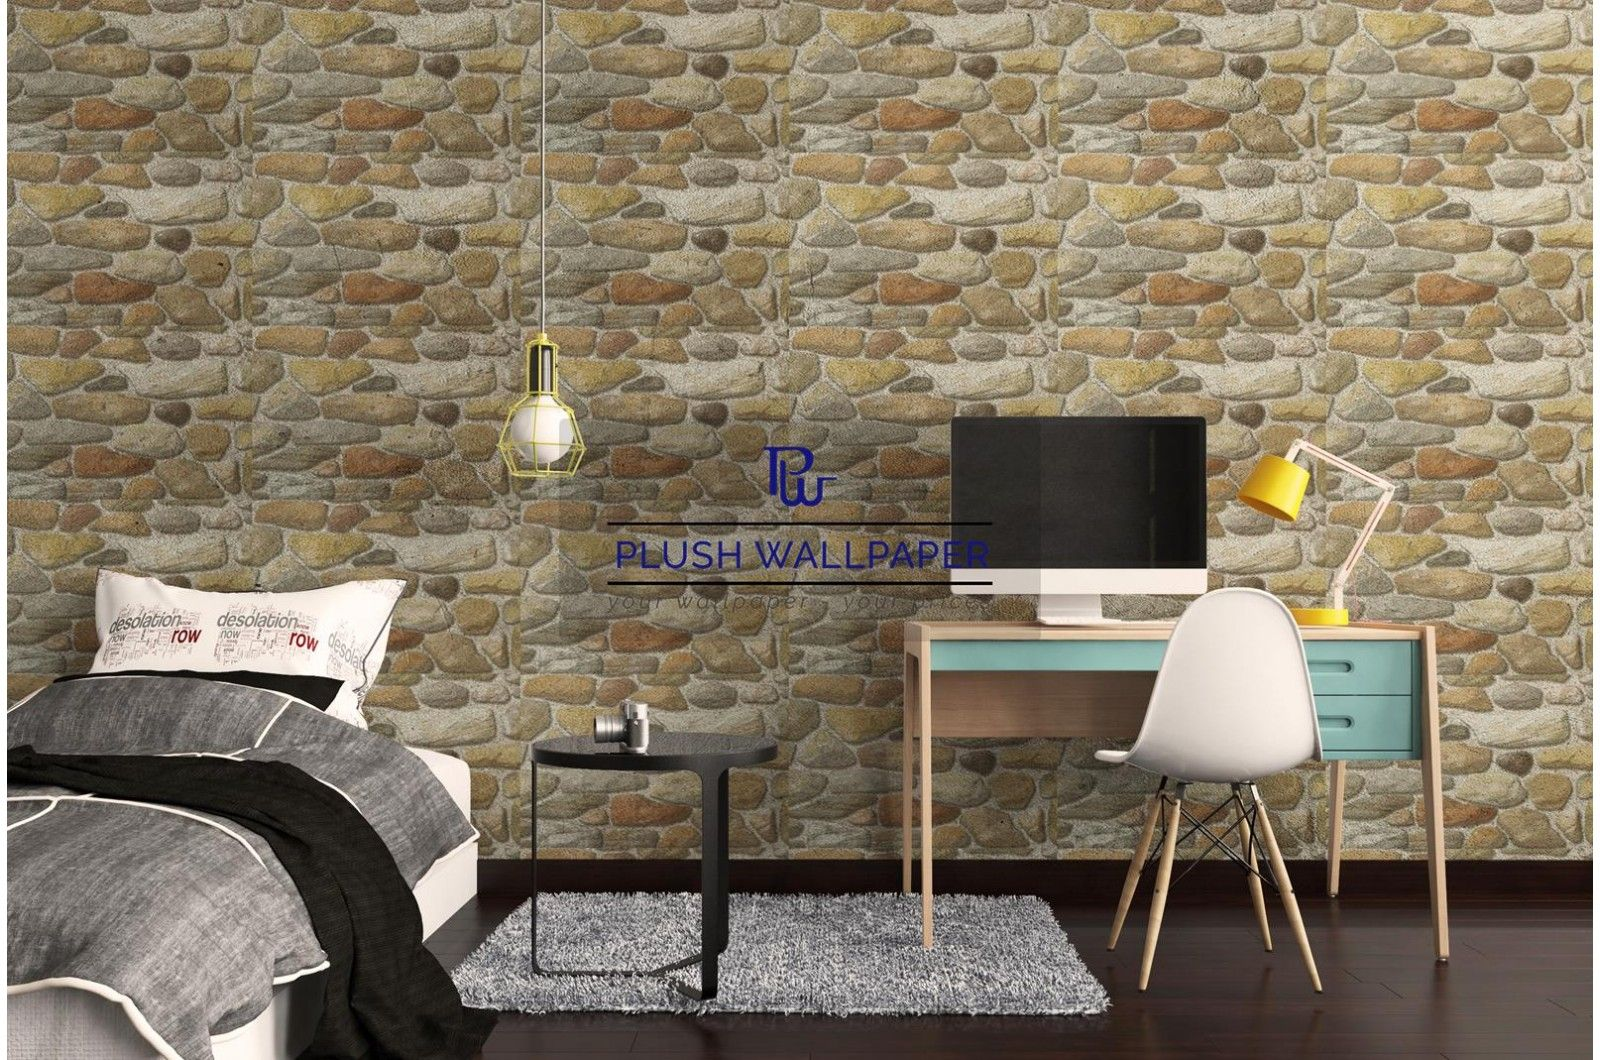 sweet home wallpaper designs. Comprehensive portfolio of luxury wallpapers suitable for your sweet home  http plushwallpaper